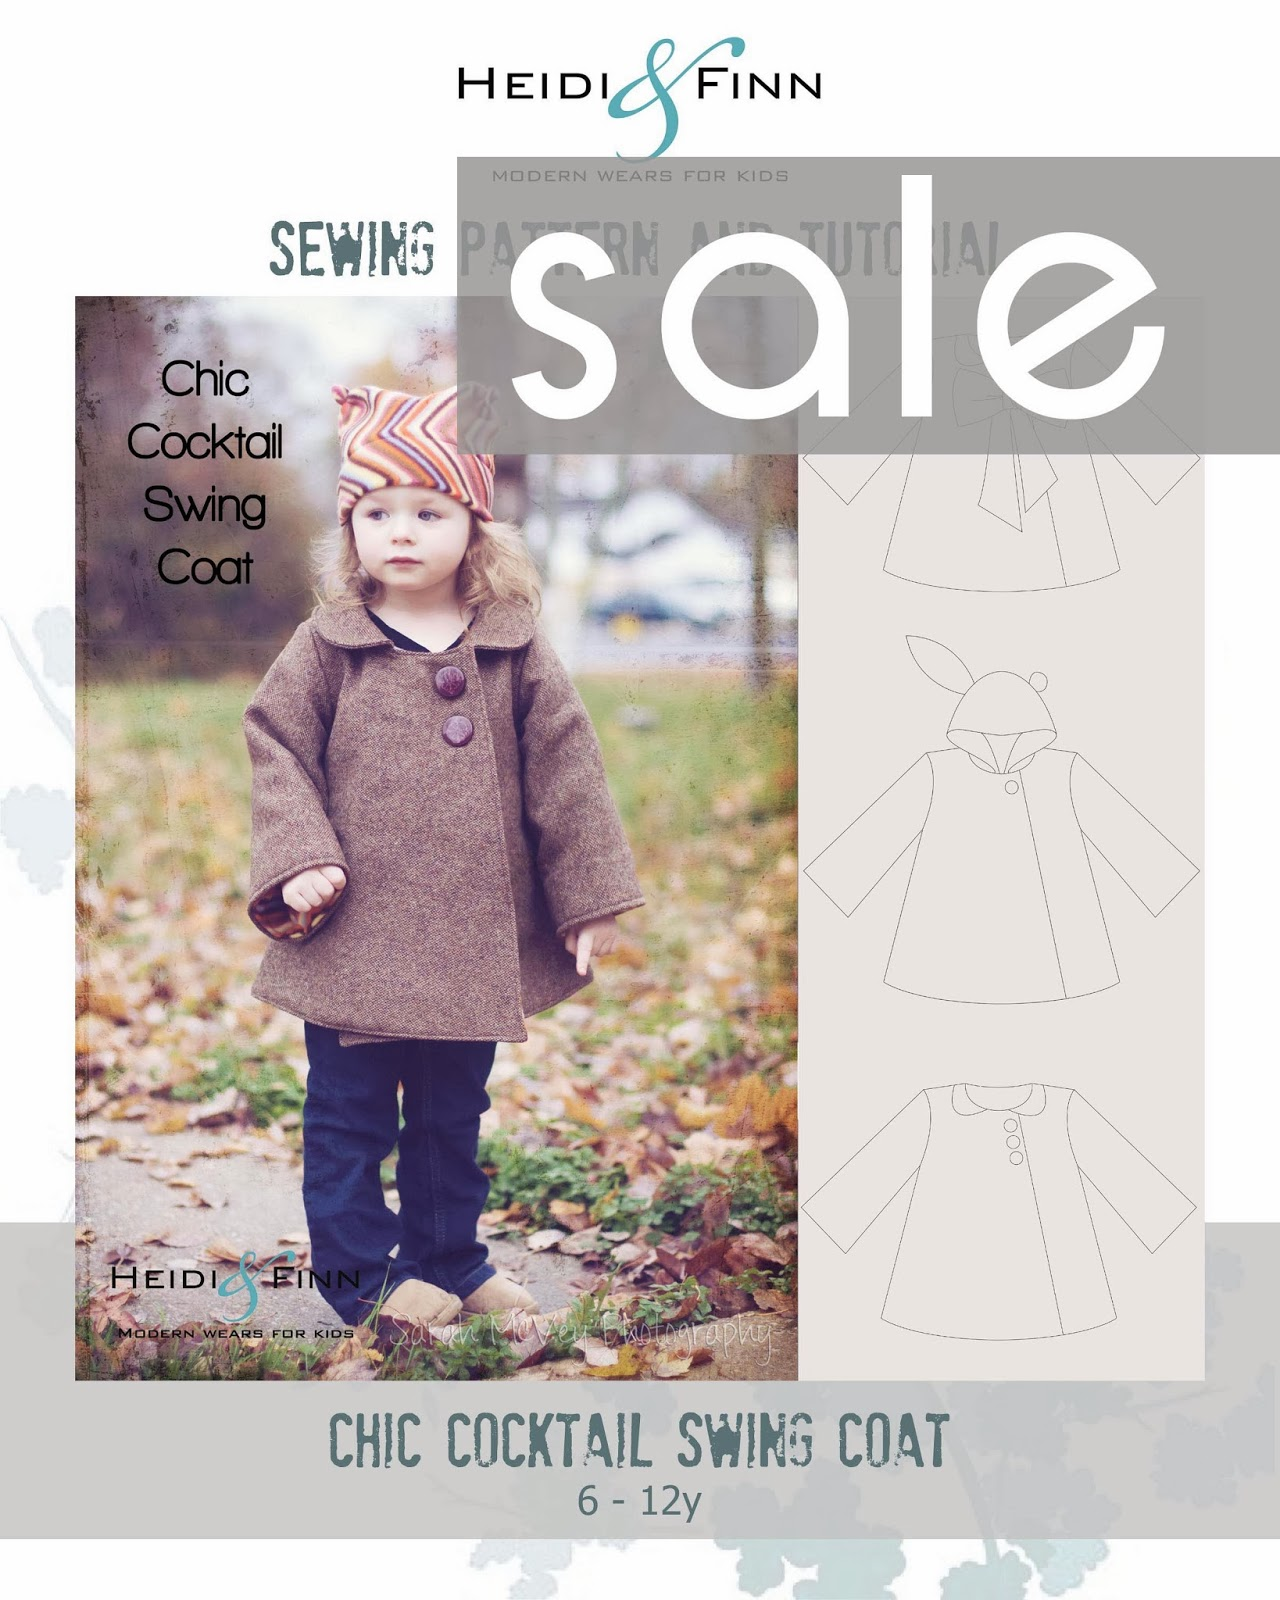 http://www.craftsy.com/pattern/sewing/clothing/sale-chic-cocktail-swing-coat-6-12y-/89174